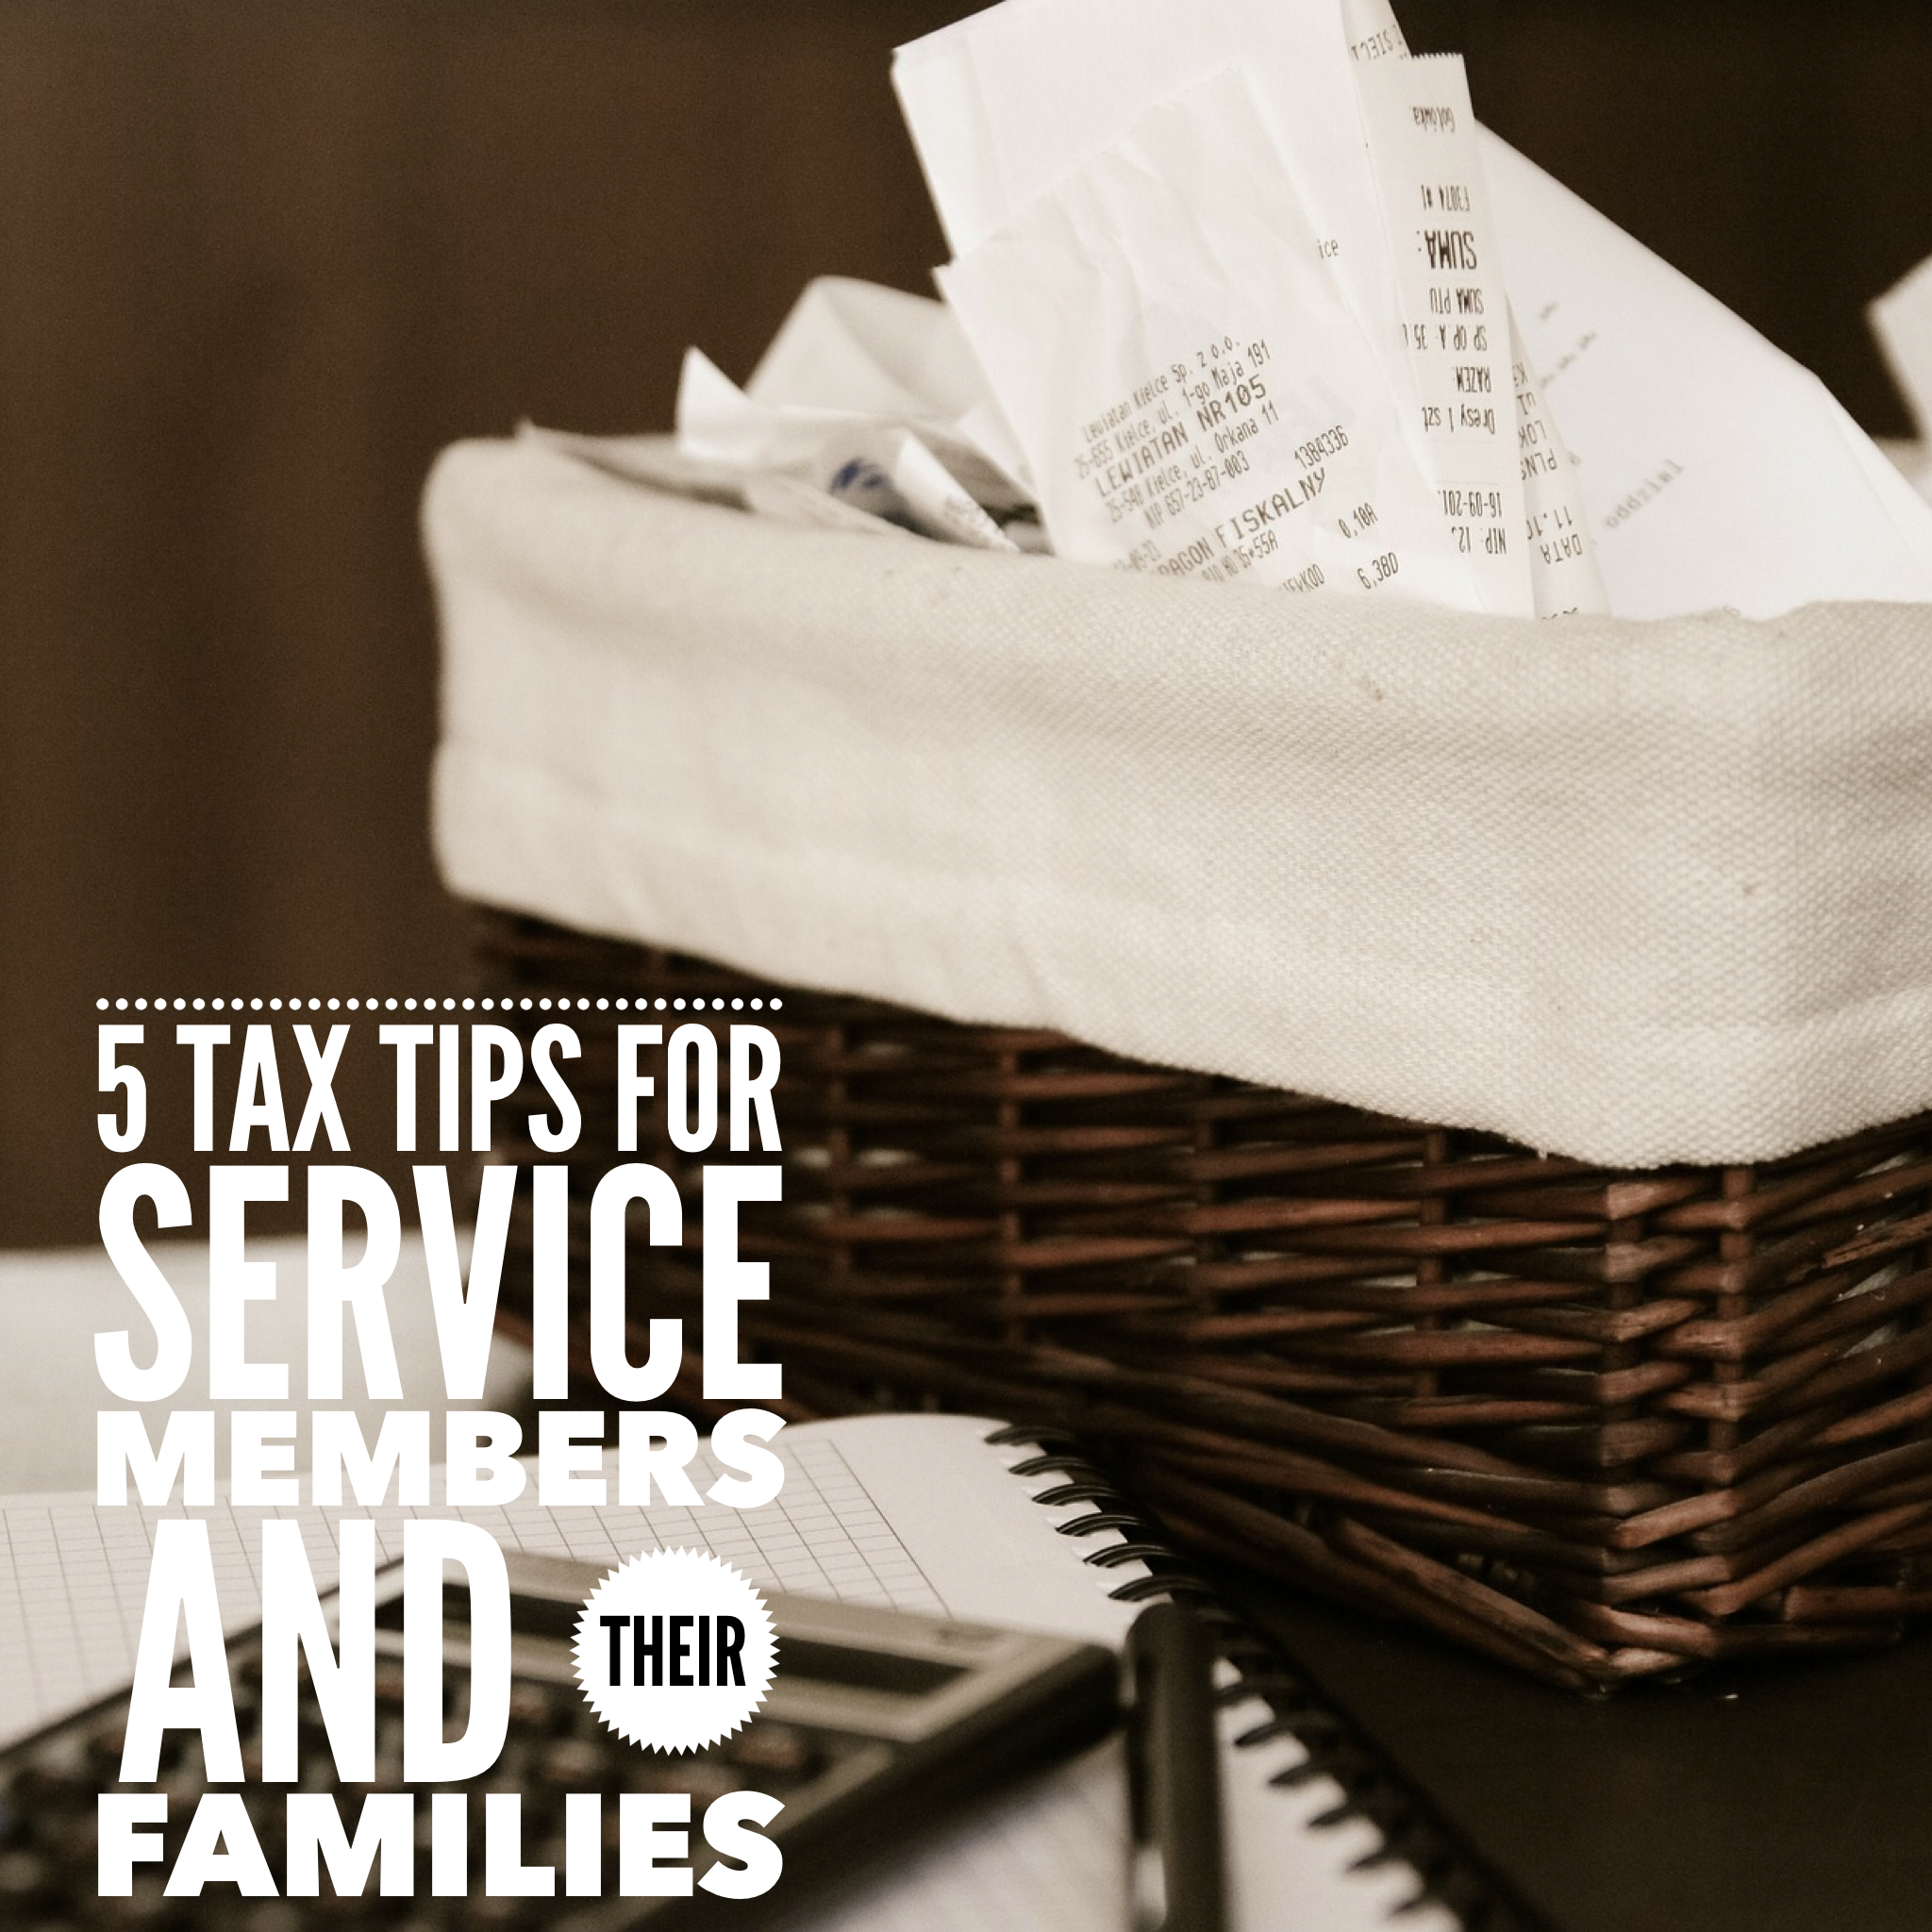 5 Tax Tips for Service Members and Their Families